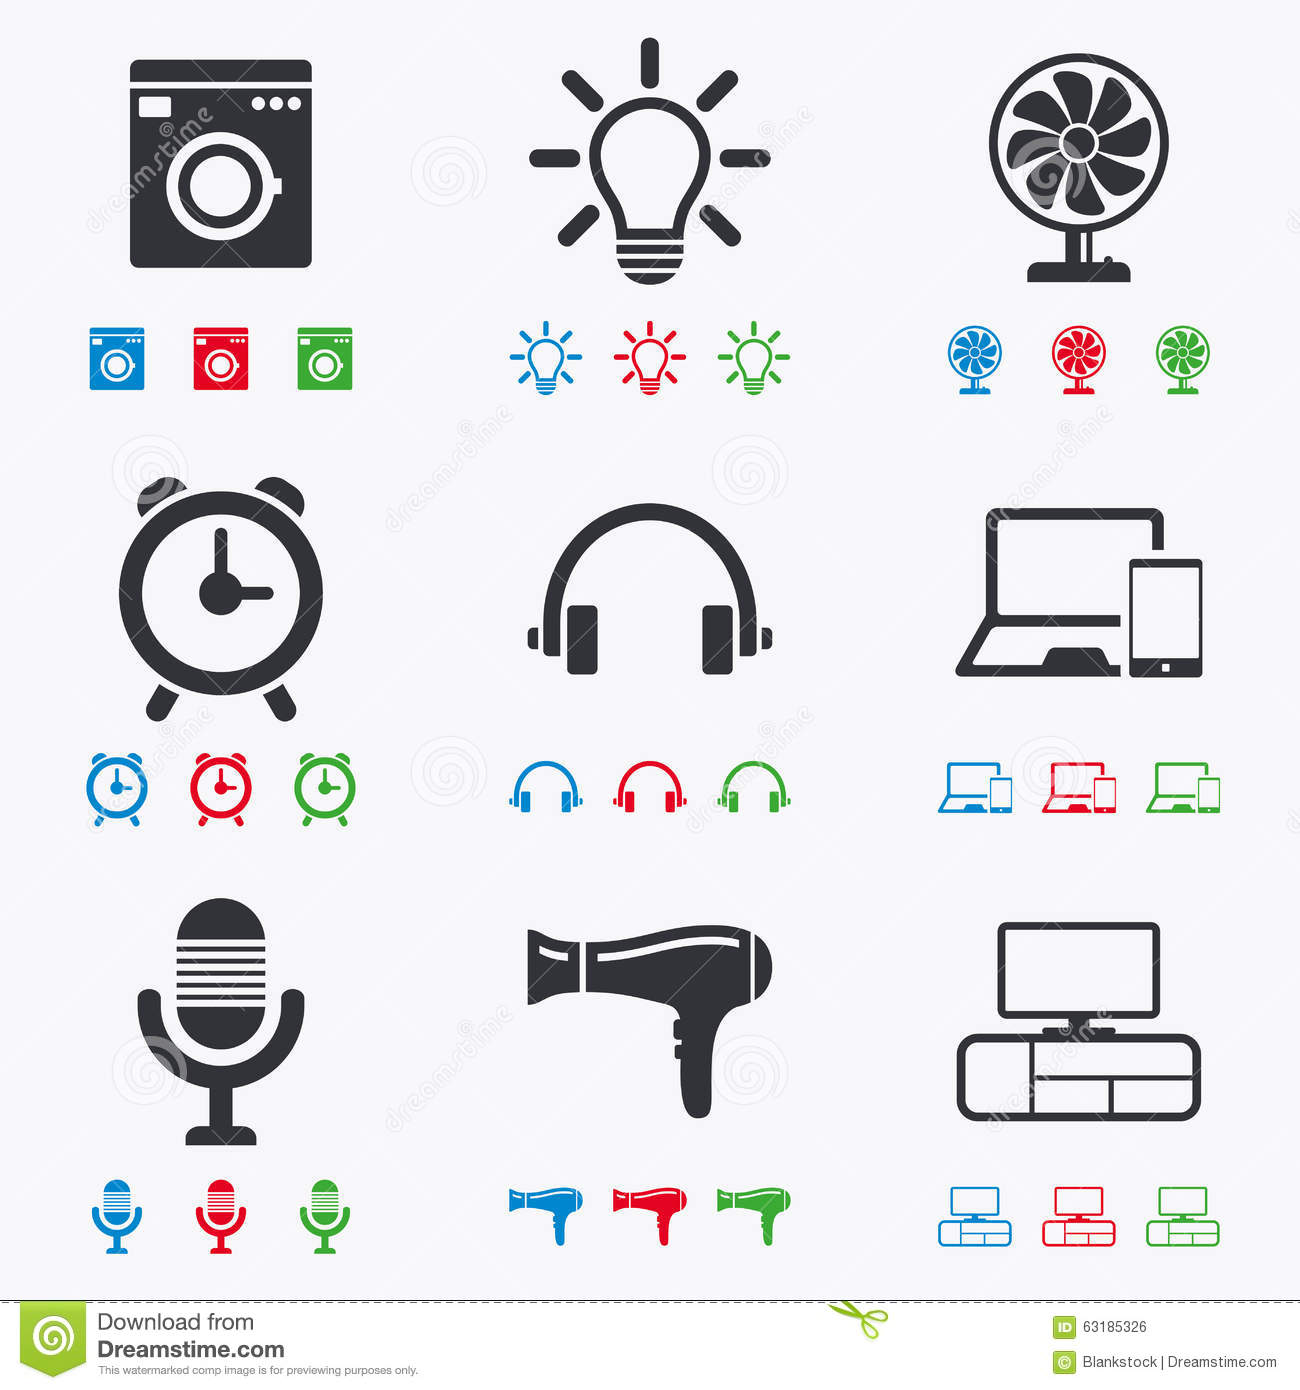 Home appliances device icons ventilator sign stock vector home appliances device icons ventilator sign biocorpaavc Image collections